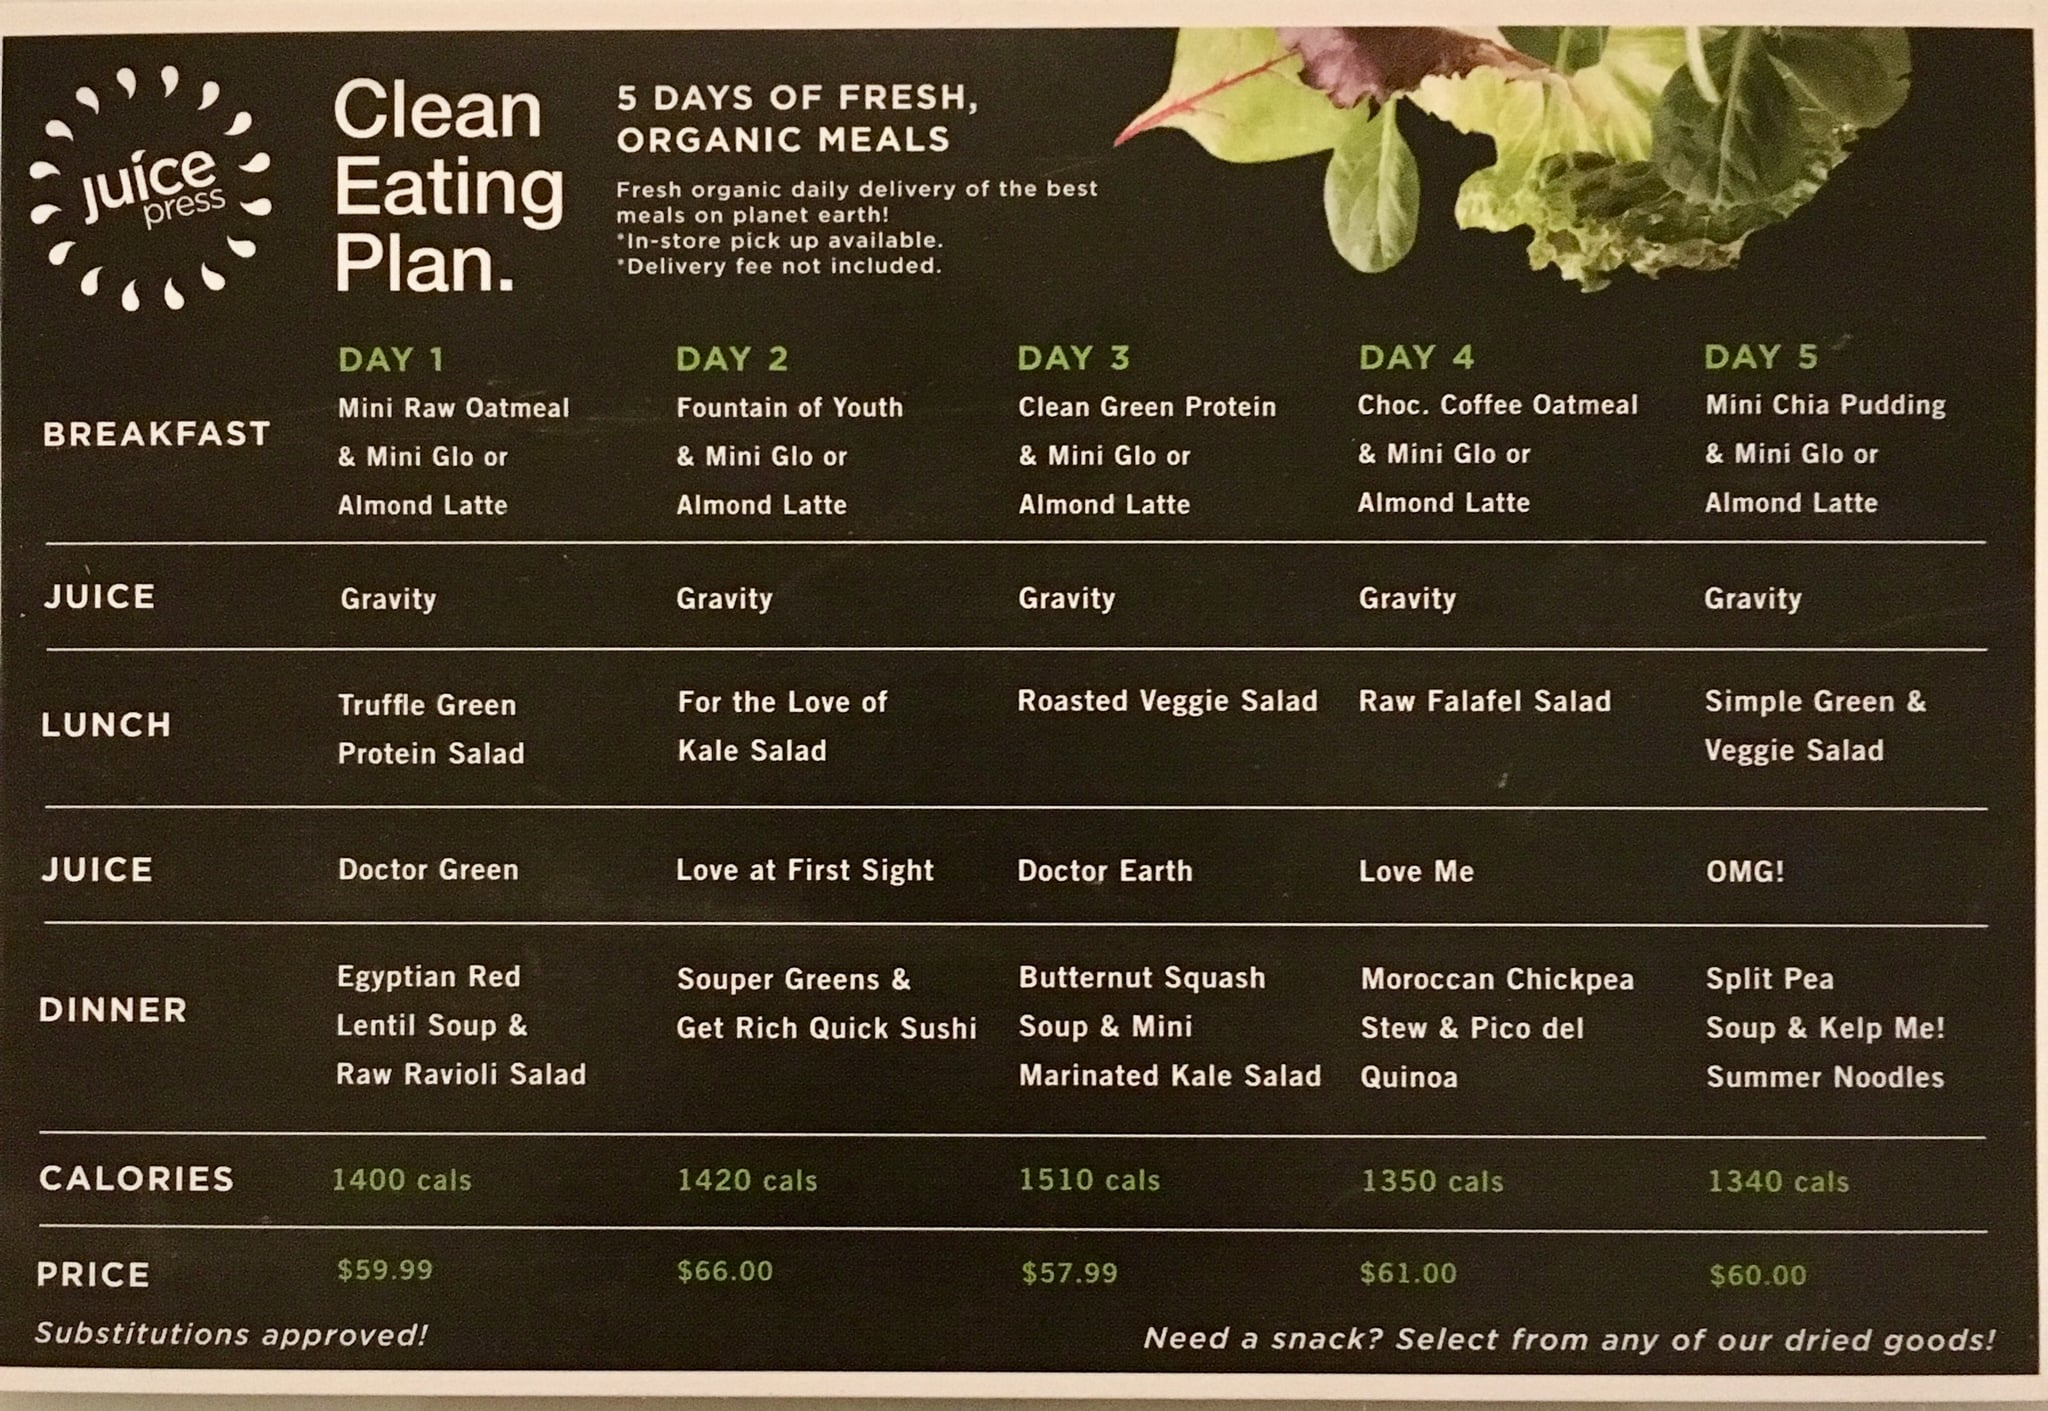 Juice Press Clean Eating Plan Review